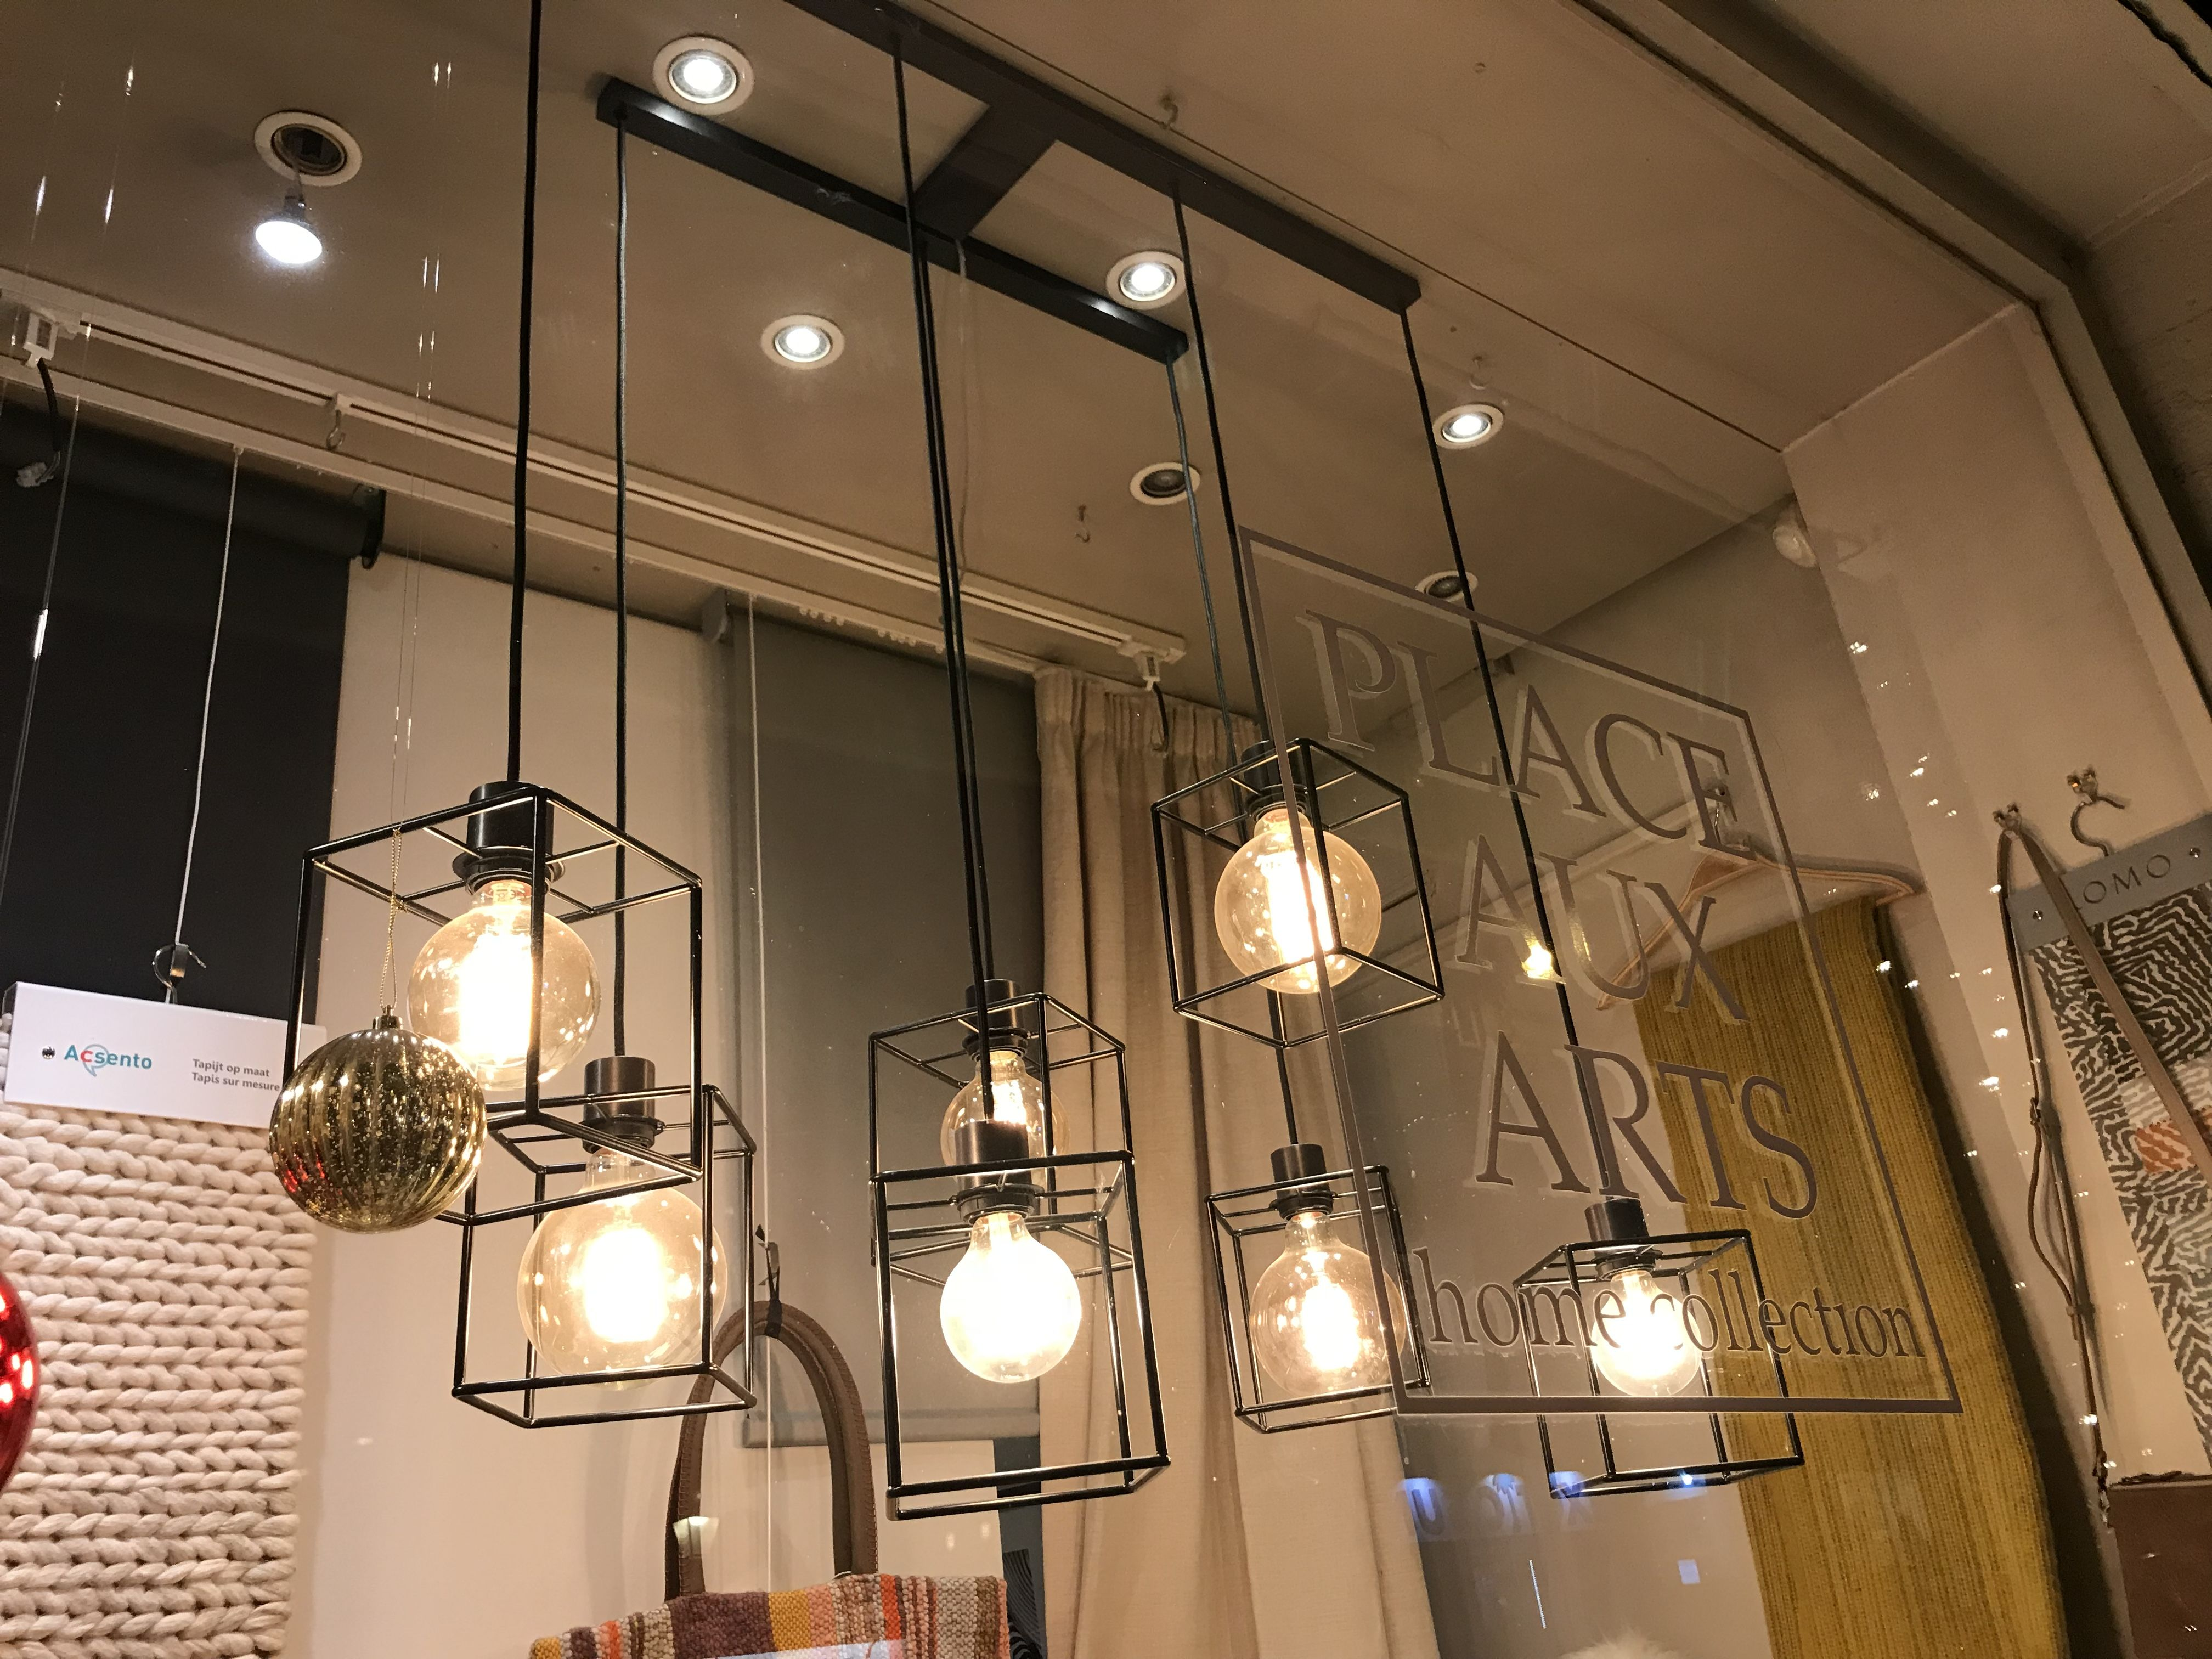 Pin by Tara Yamry on Idées déco Ceiling lights, Track